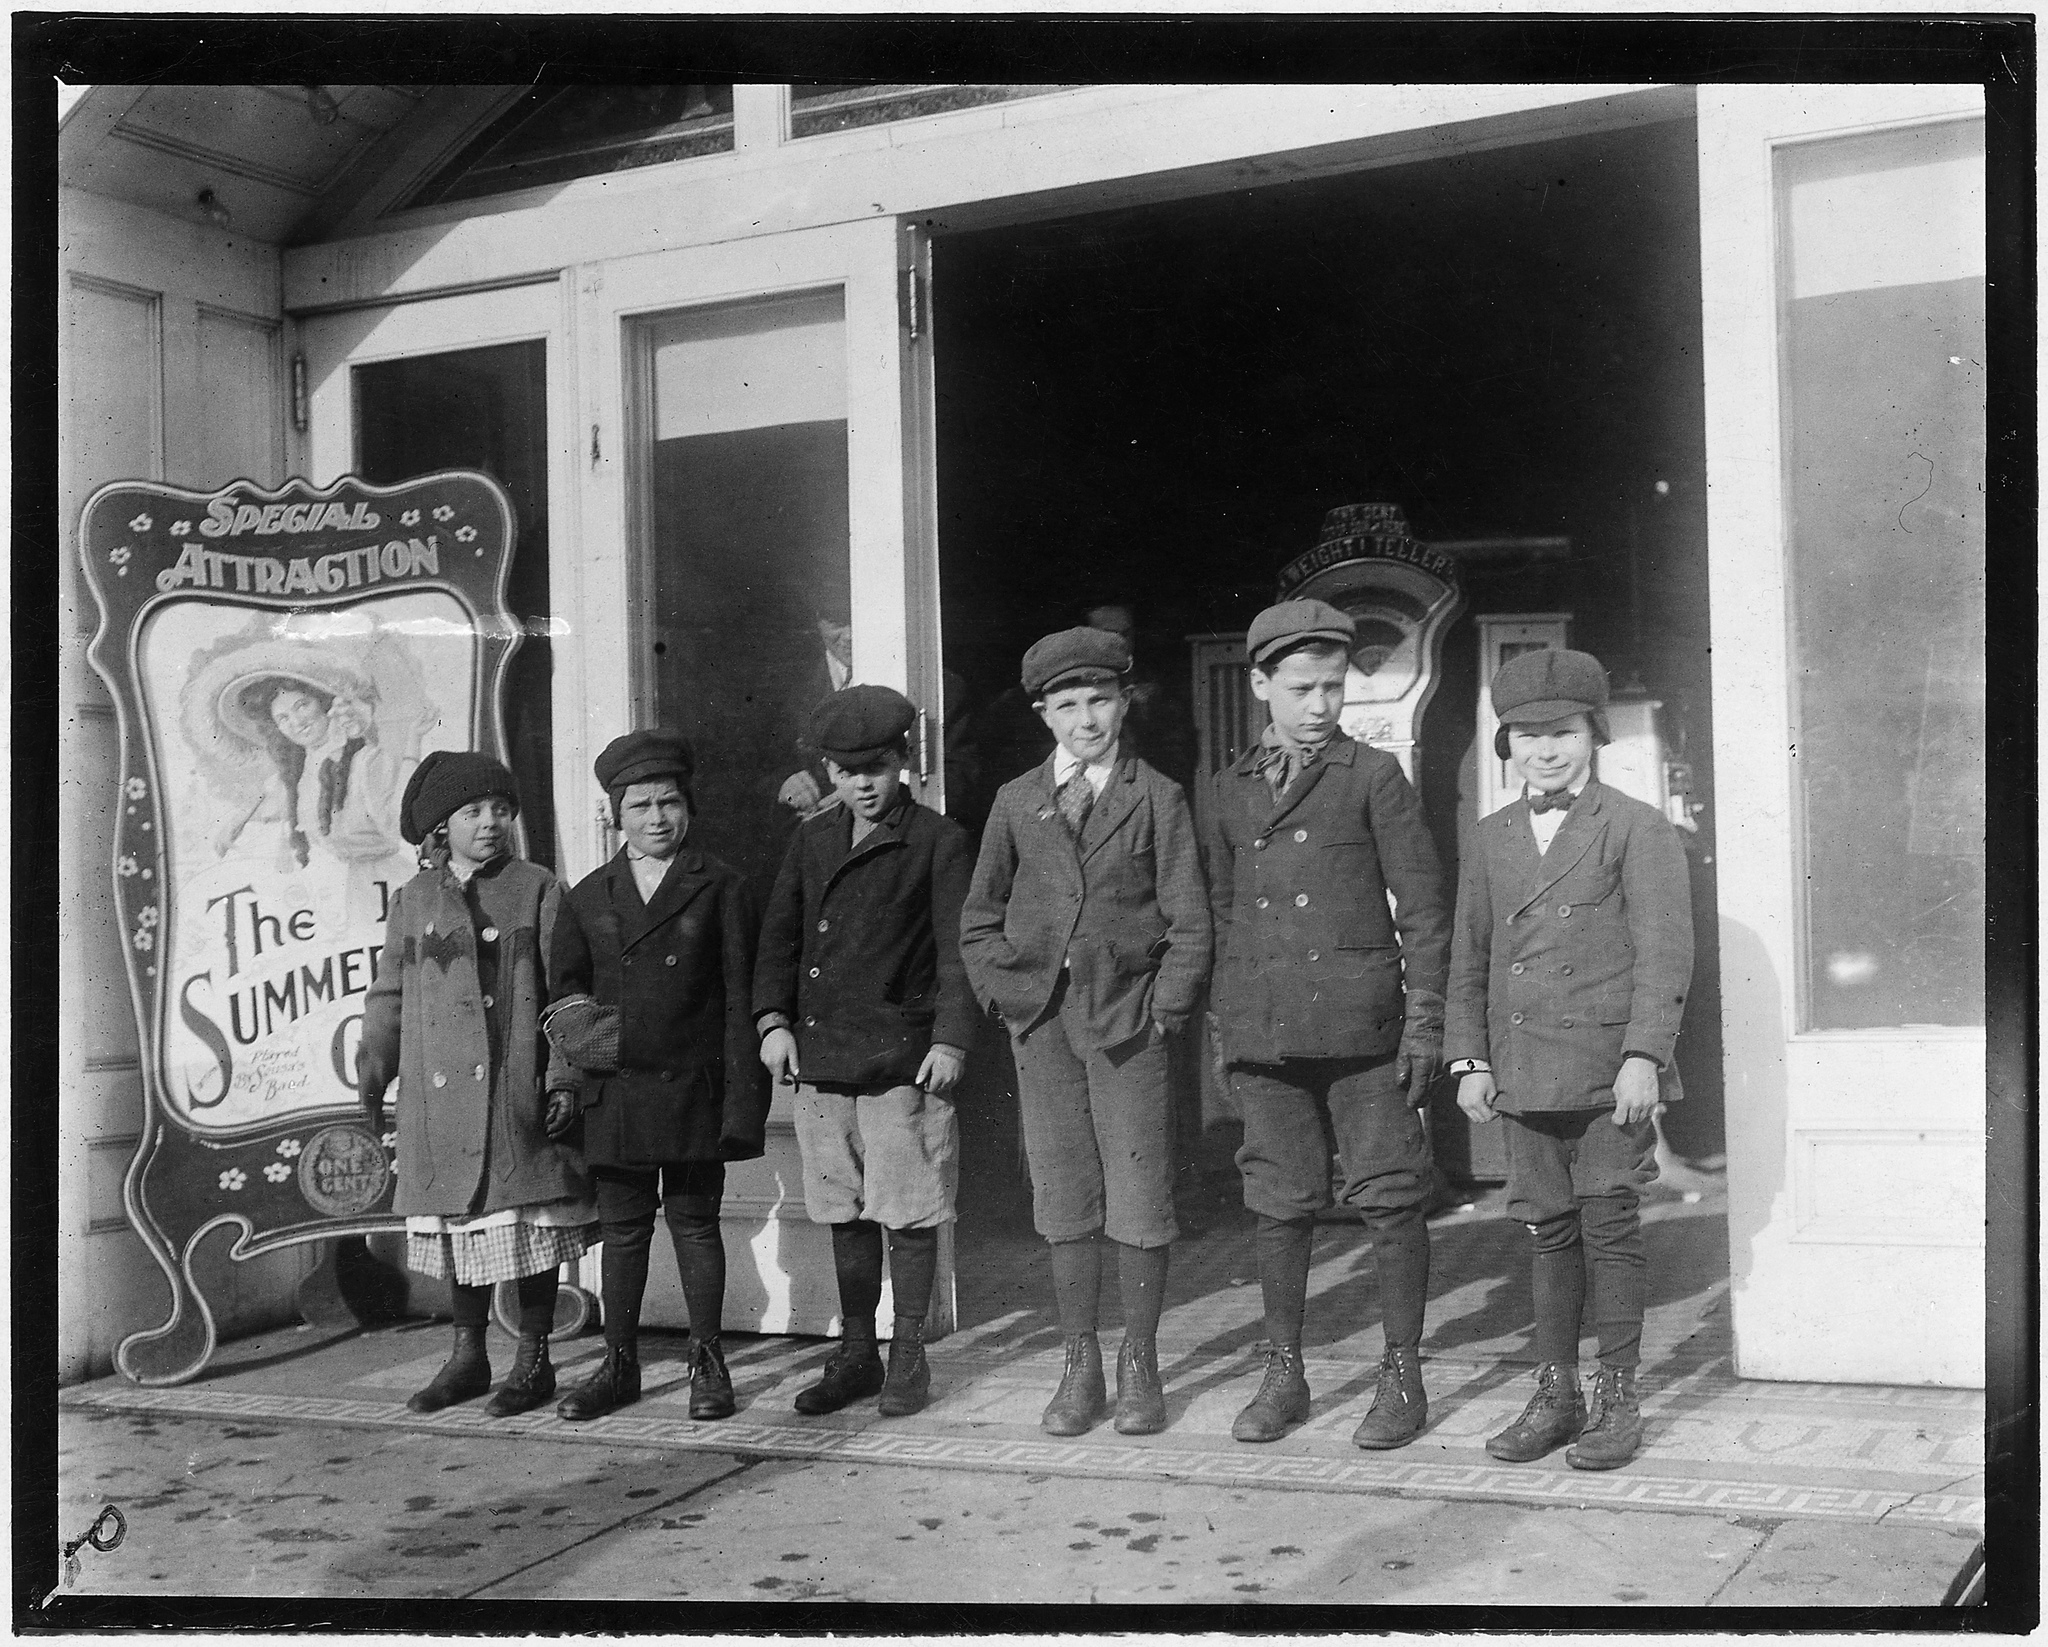 Photo by Lewis Hine, courtesy US National Archives